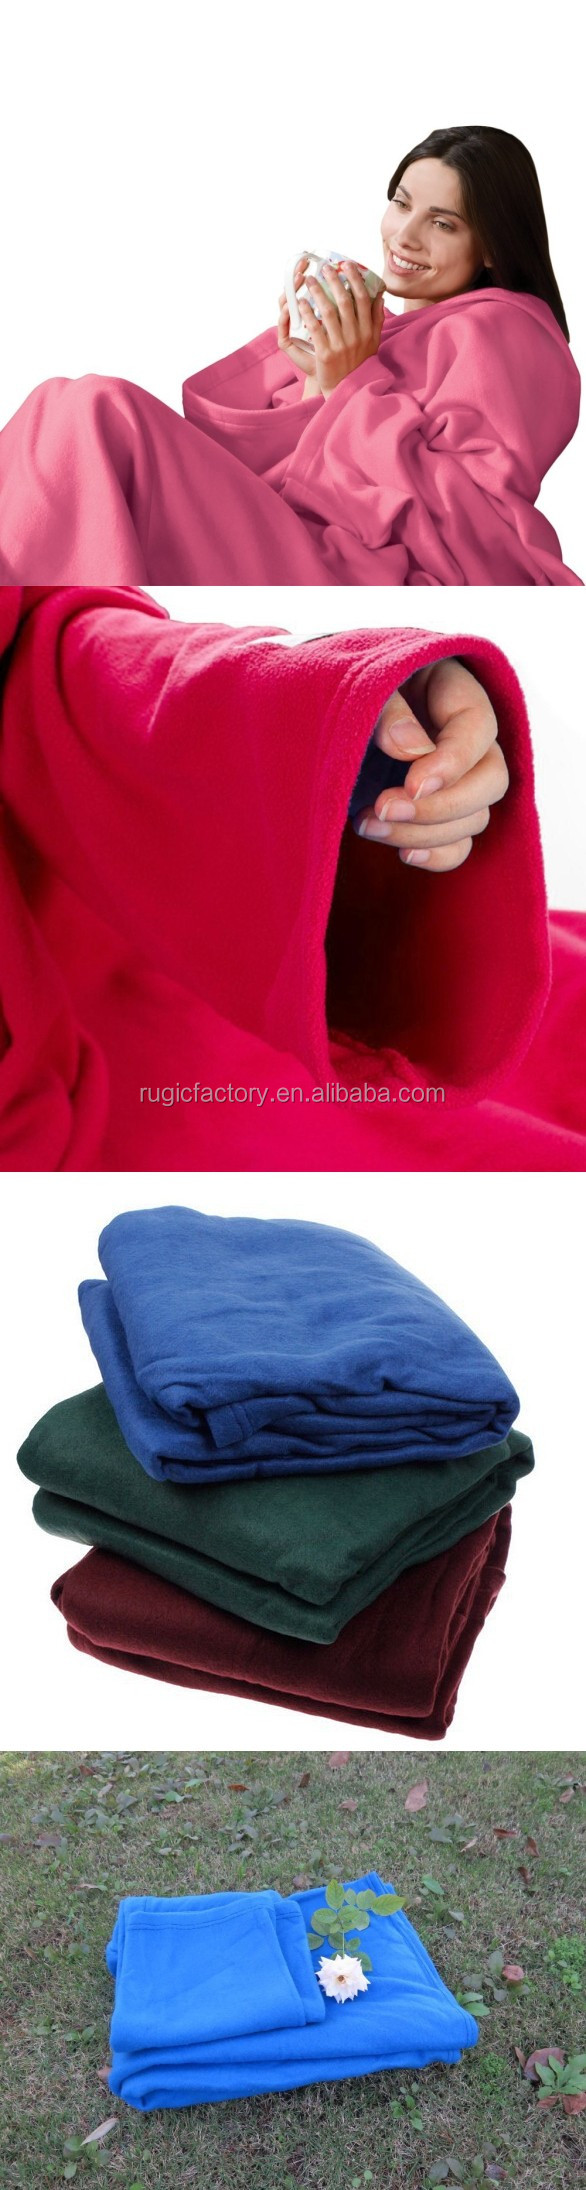 Snuggie Kopen China Fabrikant Oem Custom Fleece Snuggie Deken Met Mouwen Buy Fleece Snuggie Custom Snuggie Snuggie Deken Met Mouwen Product On Alibaba